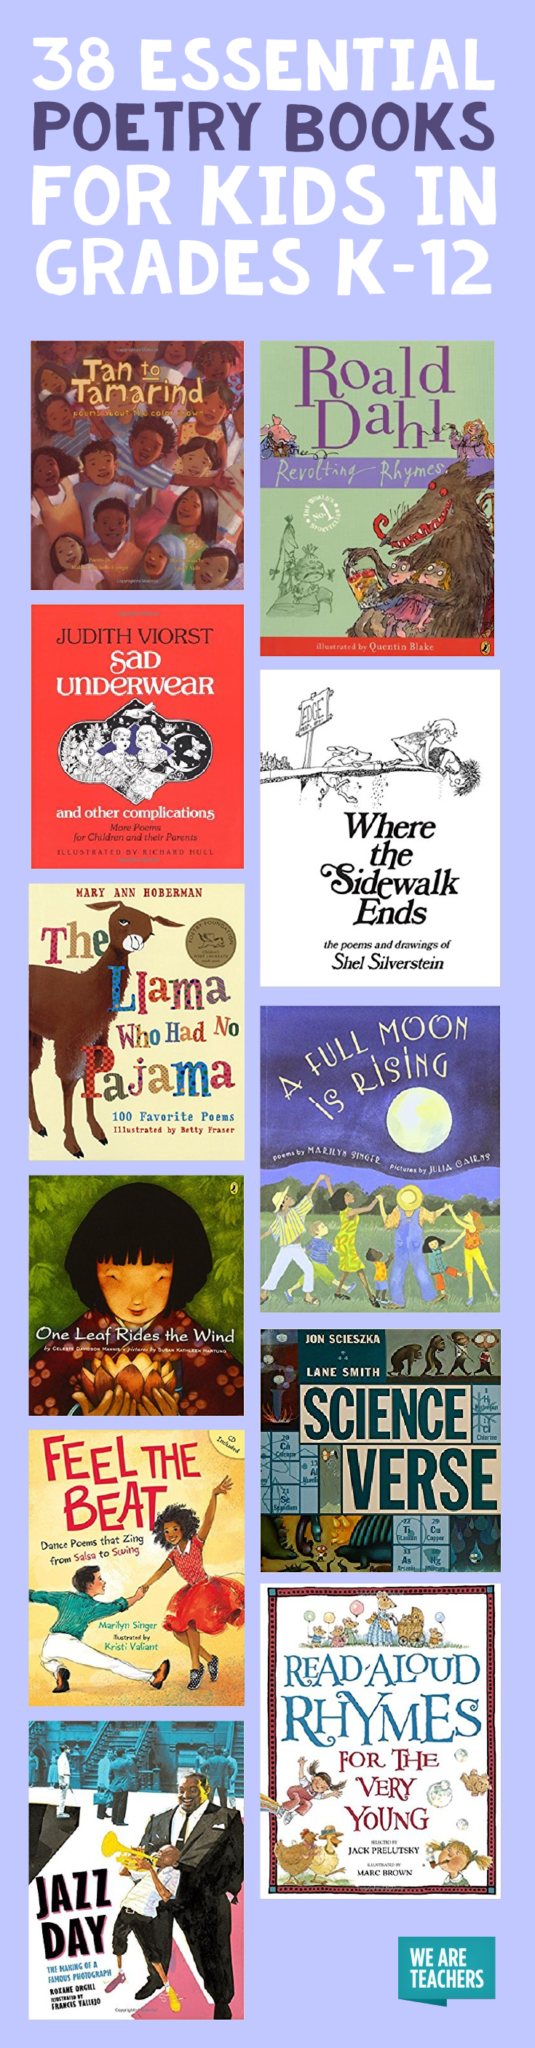 Best Poetry Books for Kids in Grades K-12 - WeAreTeachers